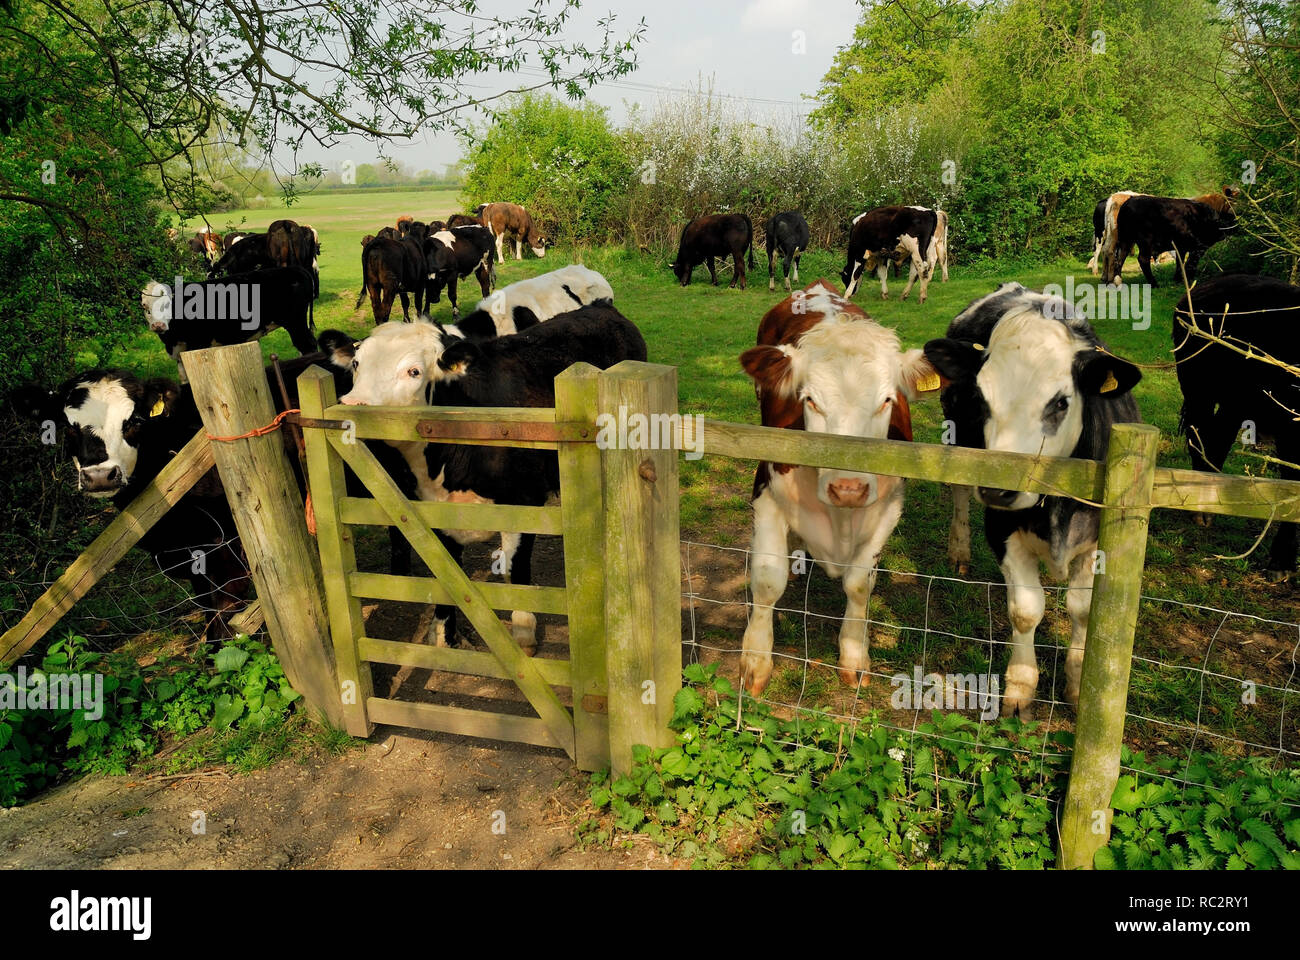 Cattle obstruction on a public footpath. - Stock Image